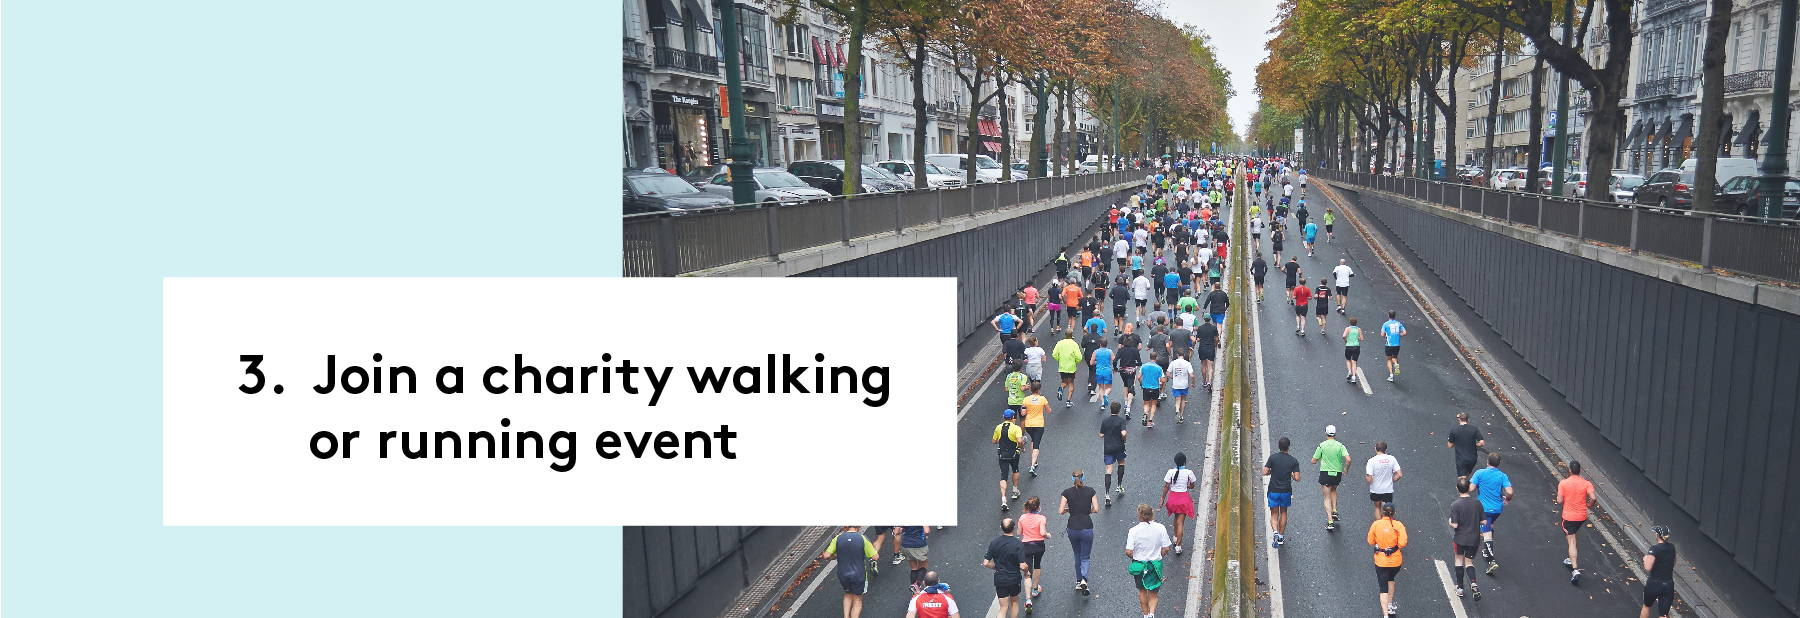 3. Join a charity walking or running event